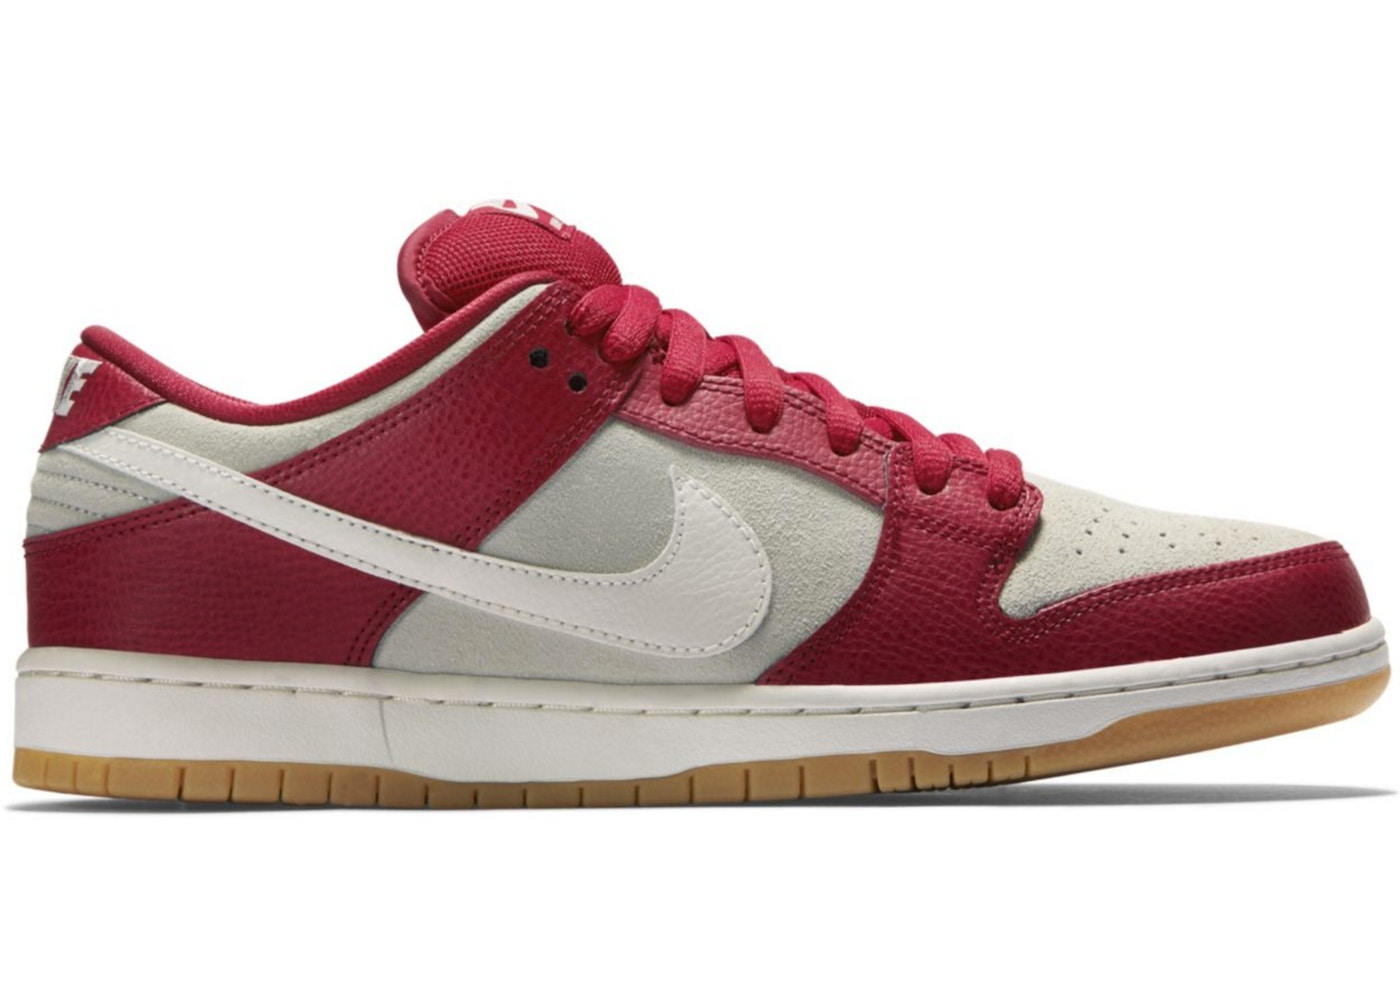 Nike Dunk Sb Low Valentines Day 2015